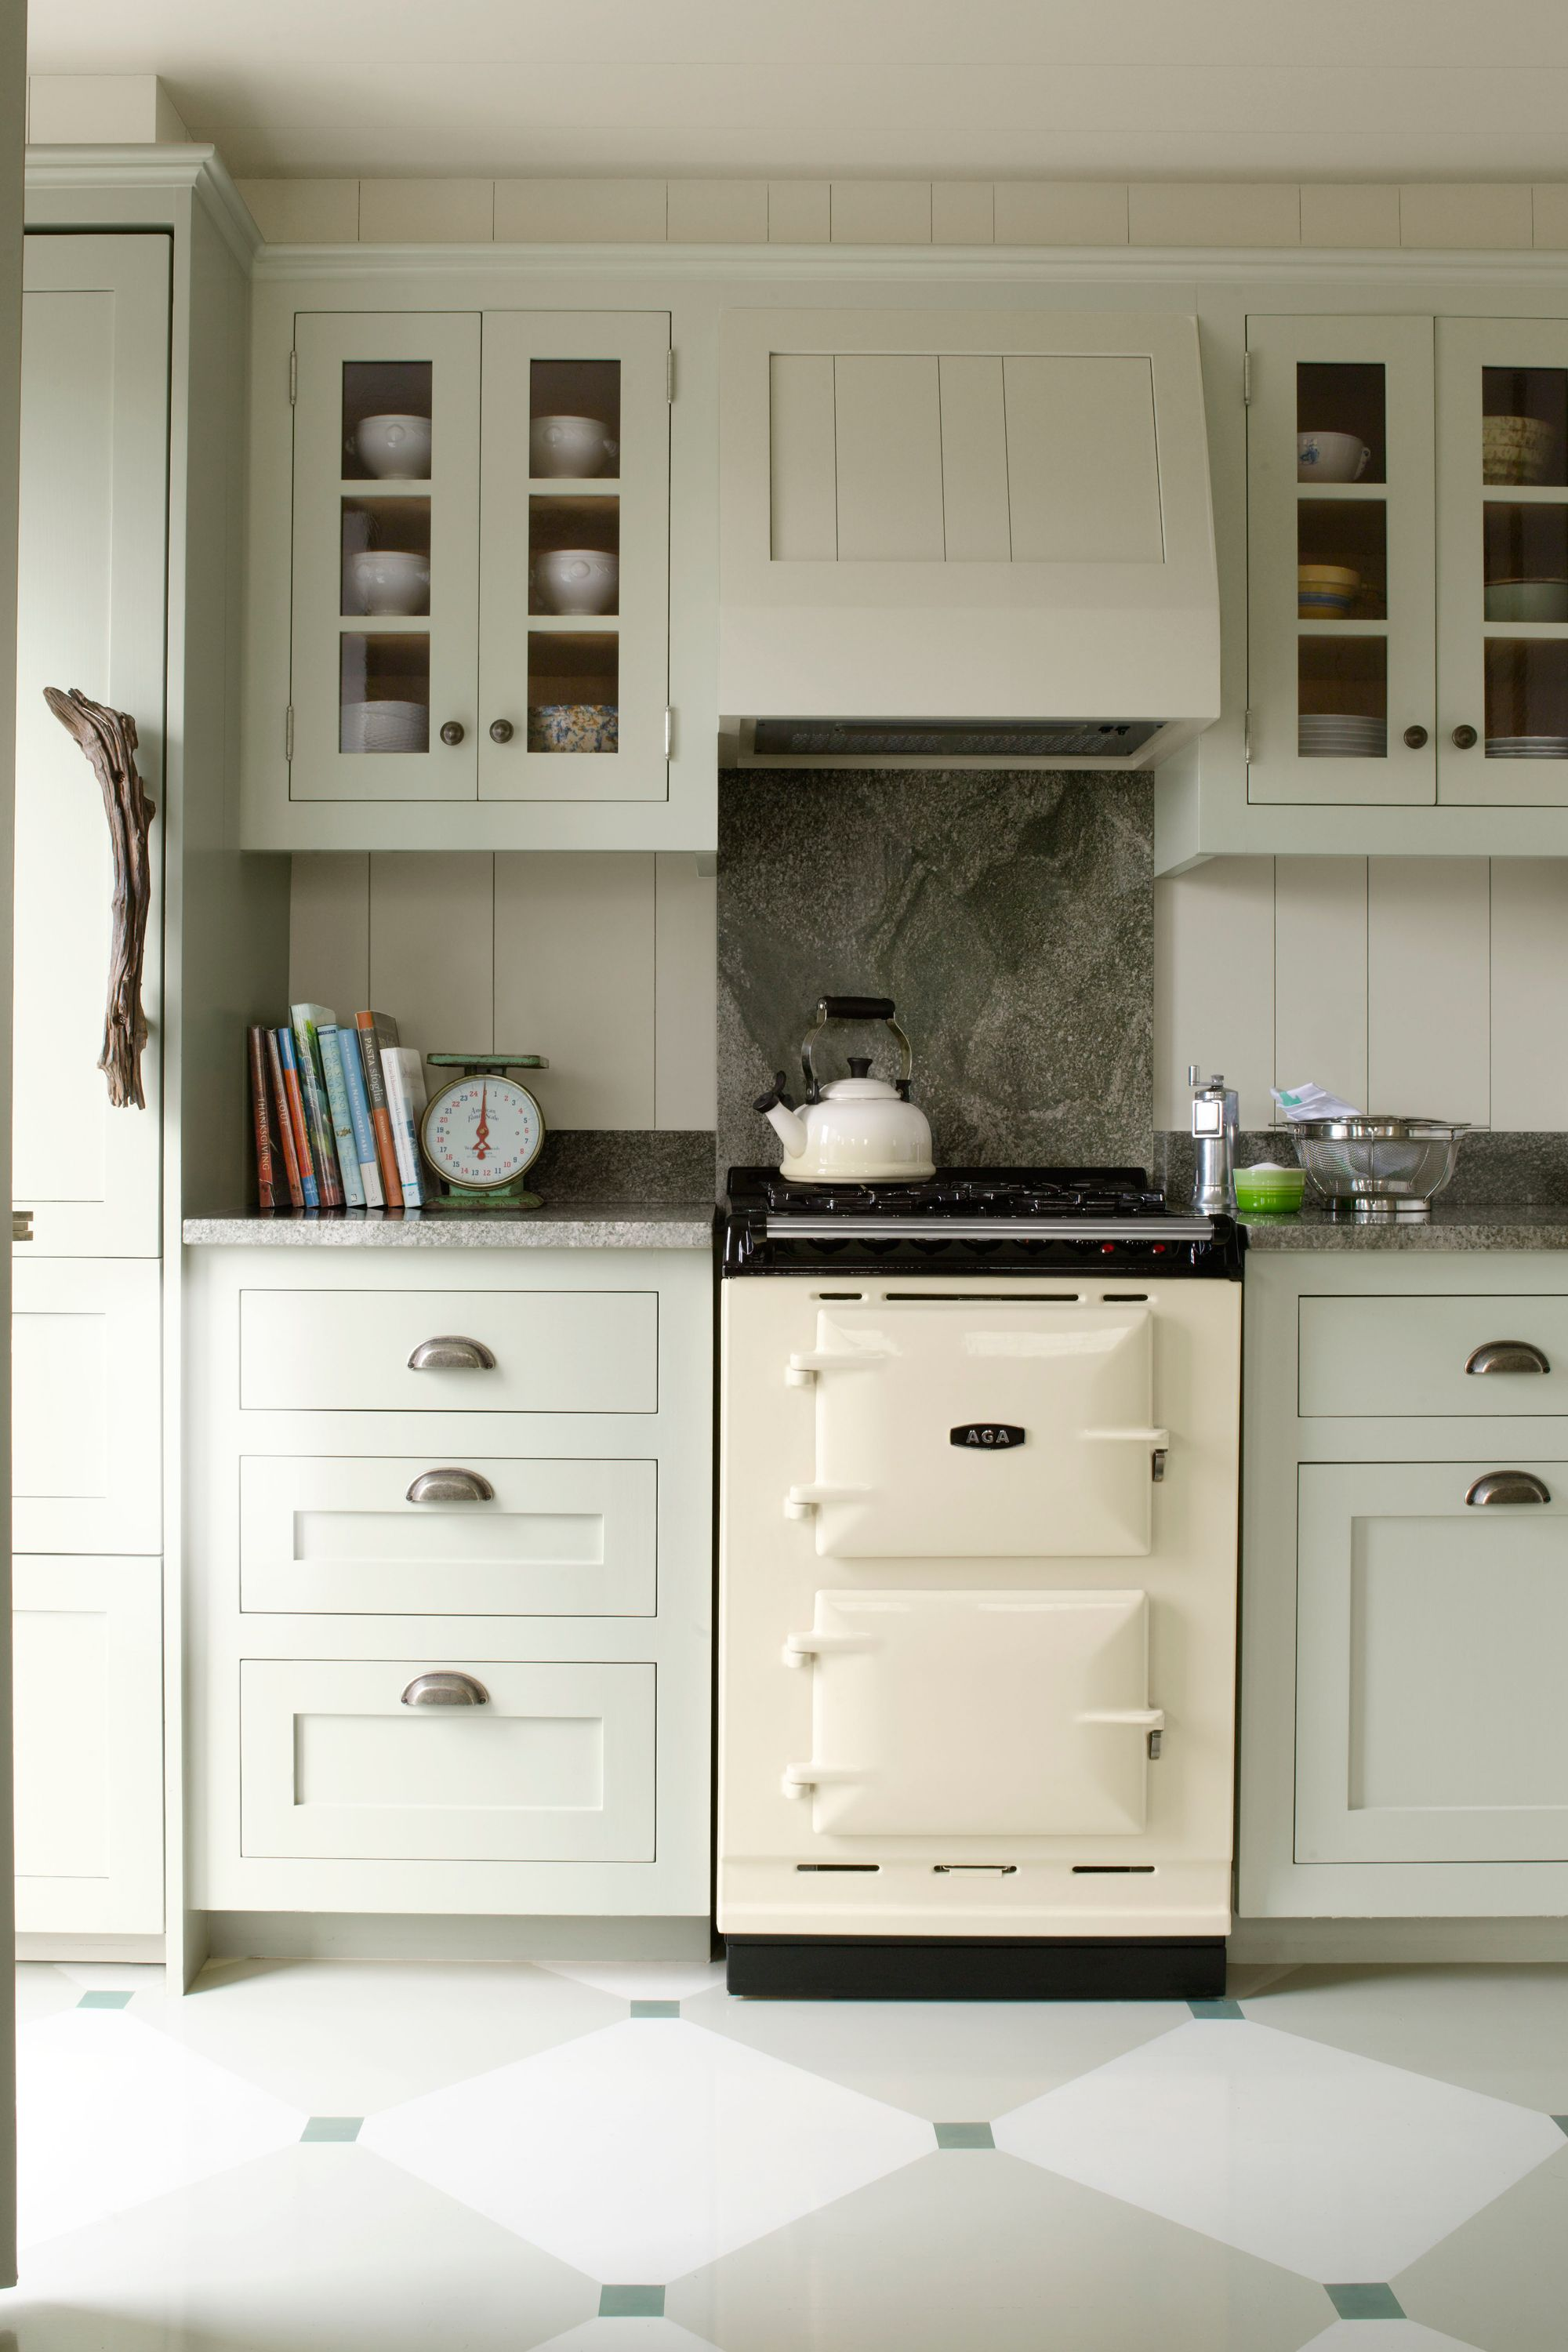 100+ Kitchen Design Ideas - Pictures of Country Kitchen Decorating on cottage kitchen, historic house kitchen, historic log cabin kitchen, historic colonial kitchen, historic georgian kitchen, historic apartment kitchen, historic french kitchen, historic church kitchen, historic rustic kitchen, historic modern kitchen, historic country kitchen,